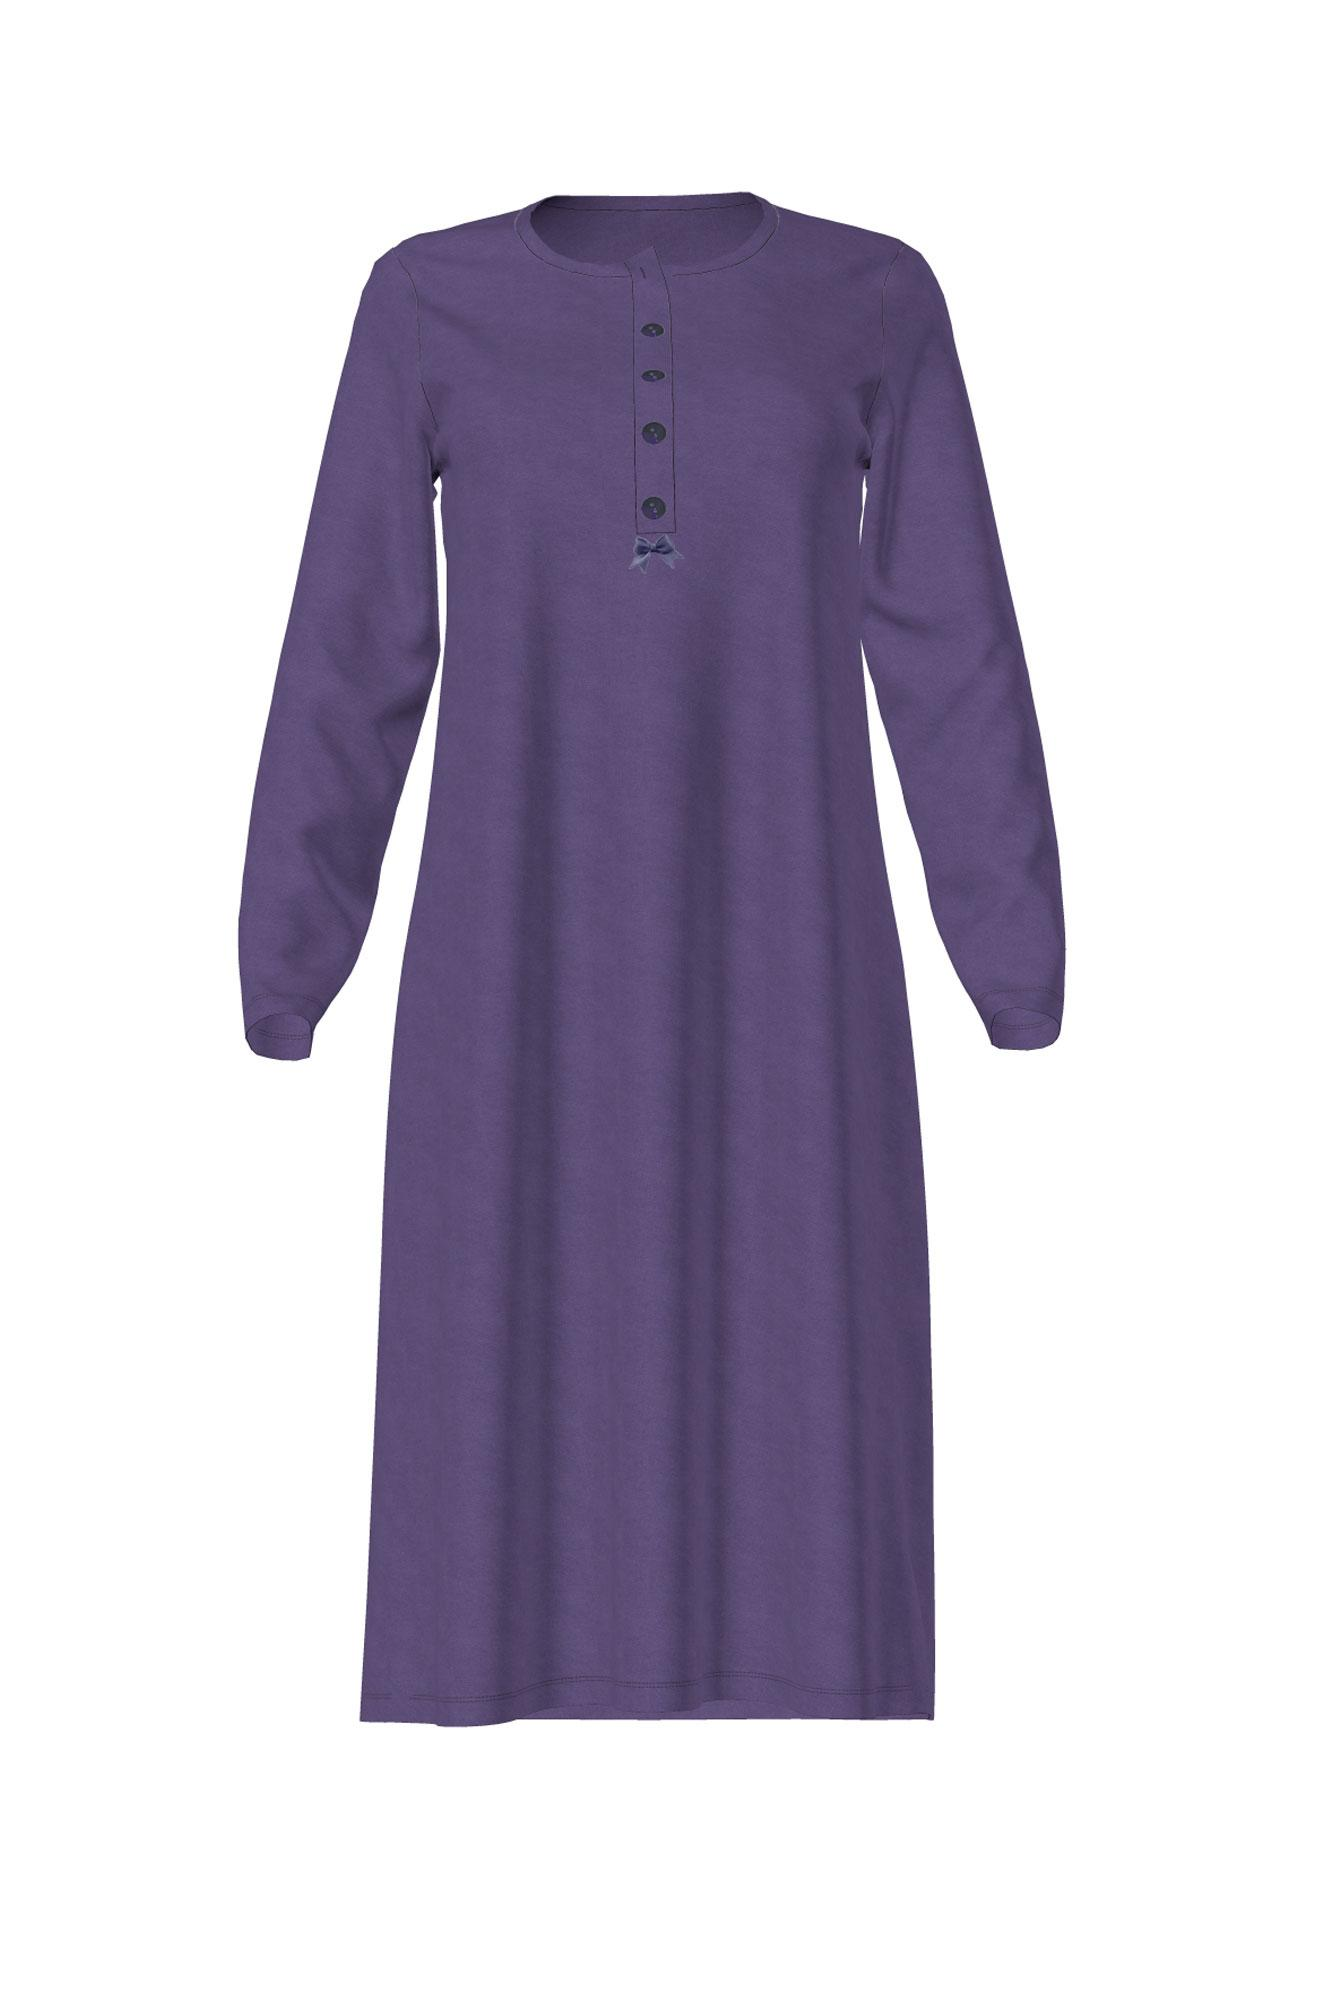 Women's Maternity Nightgown